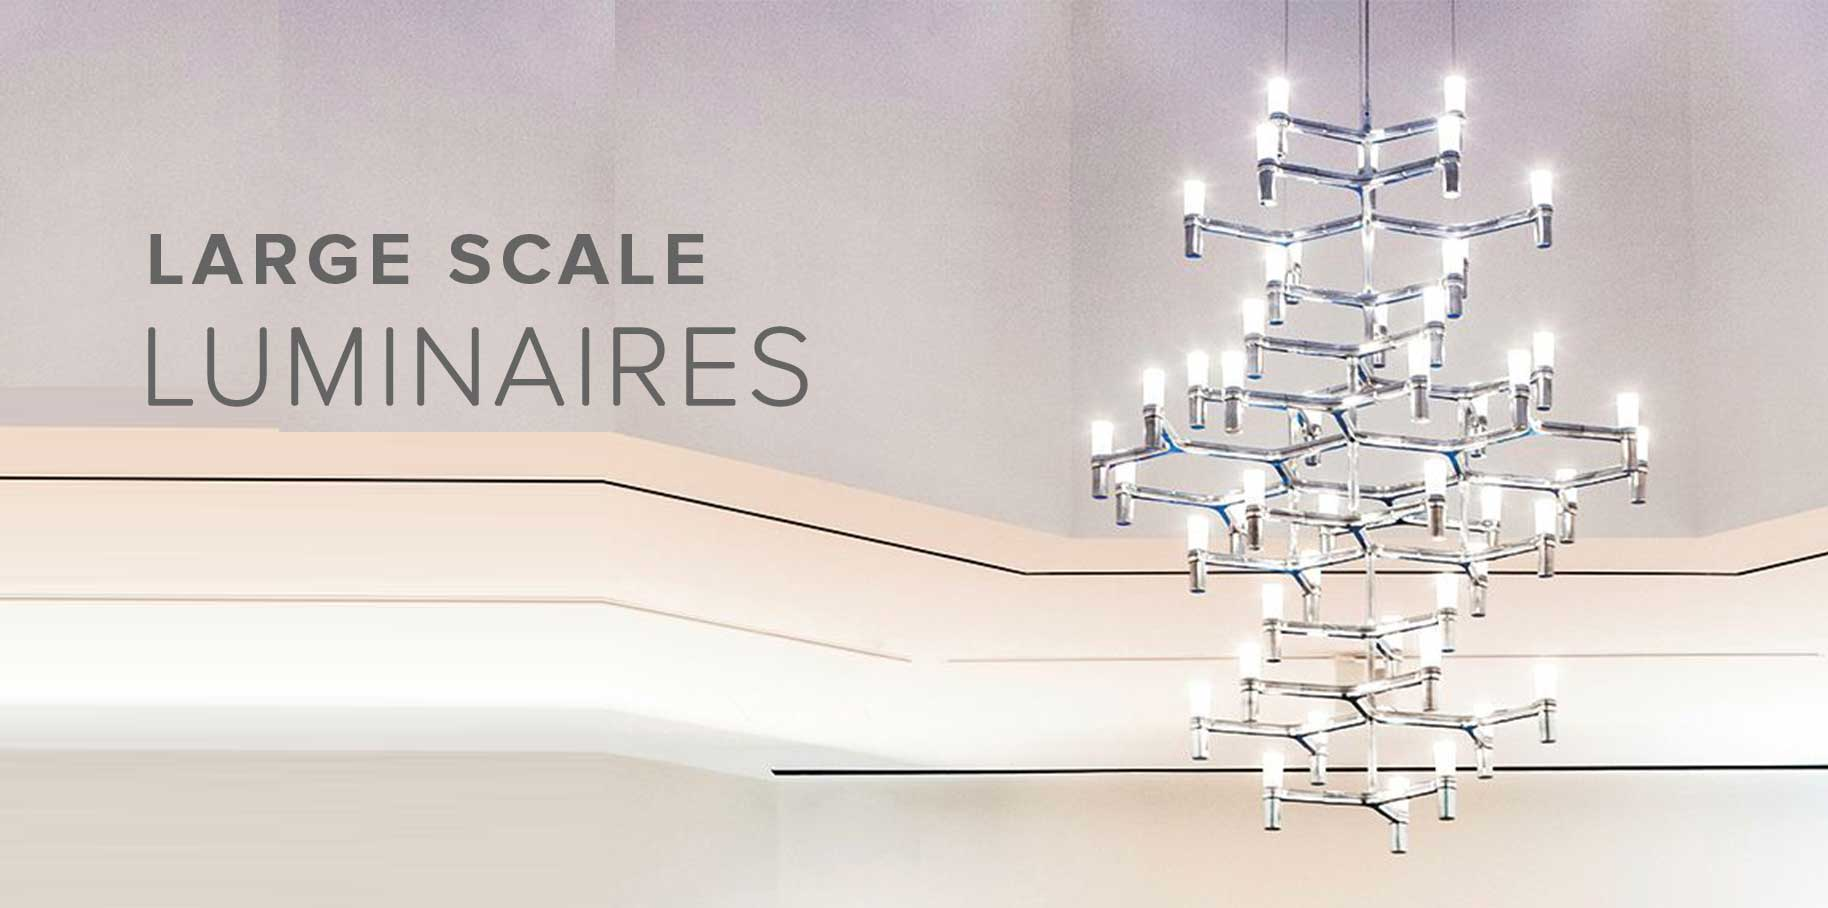 Large Scale Luminaires